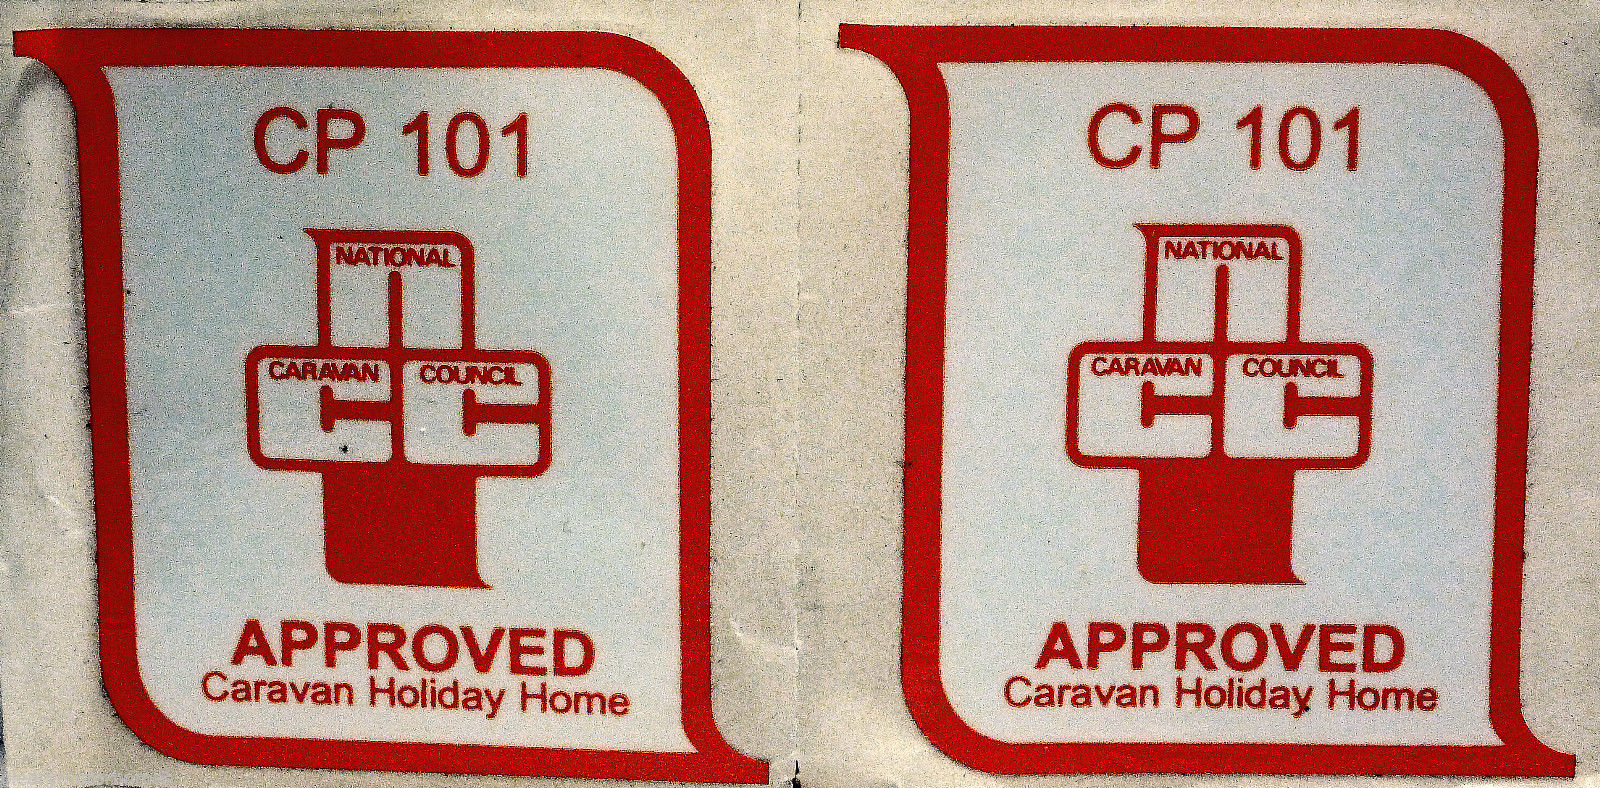 Home shop for accessories decals · caravan approved stickers decal covers scratches dents